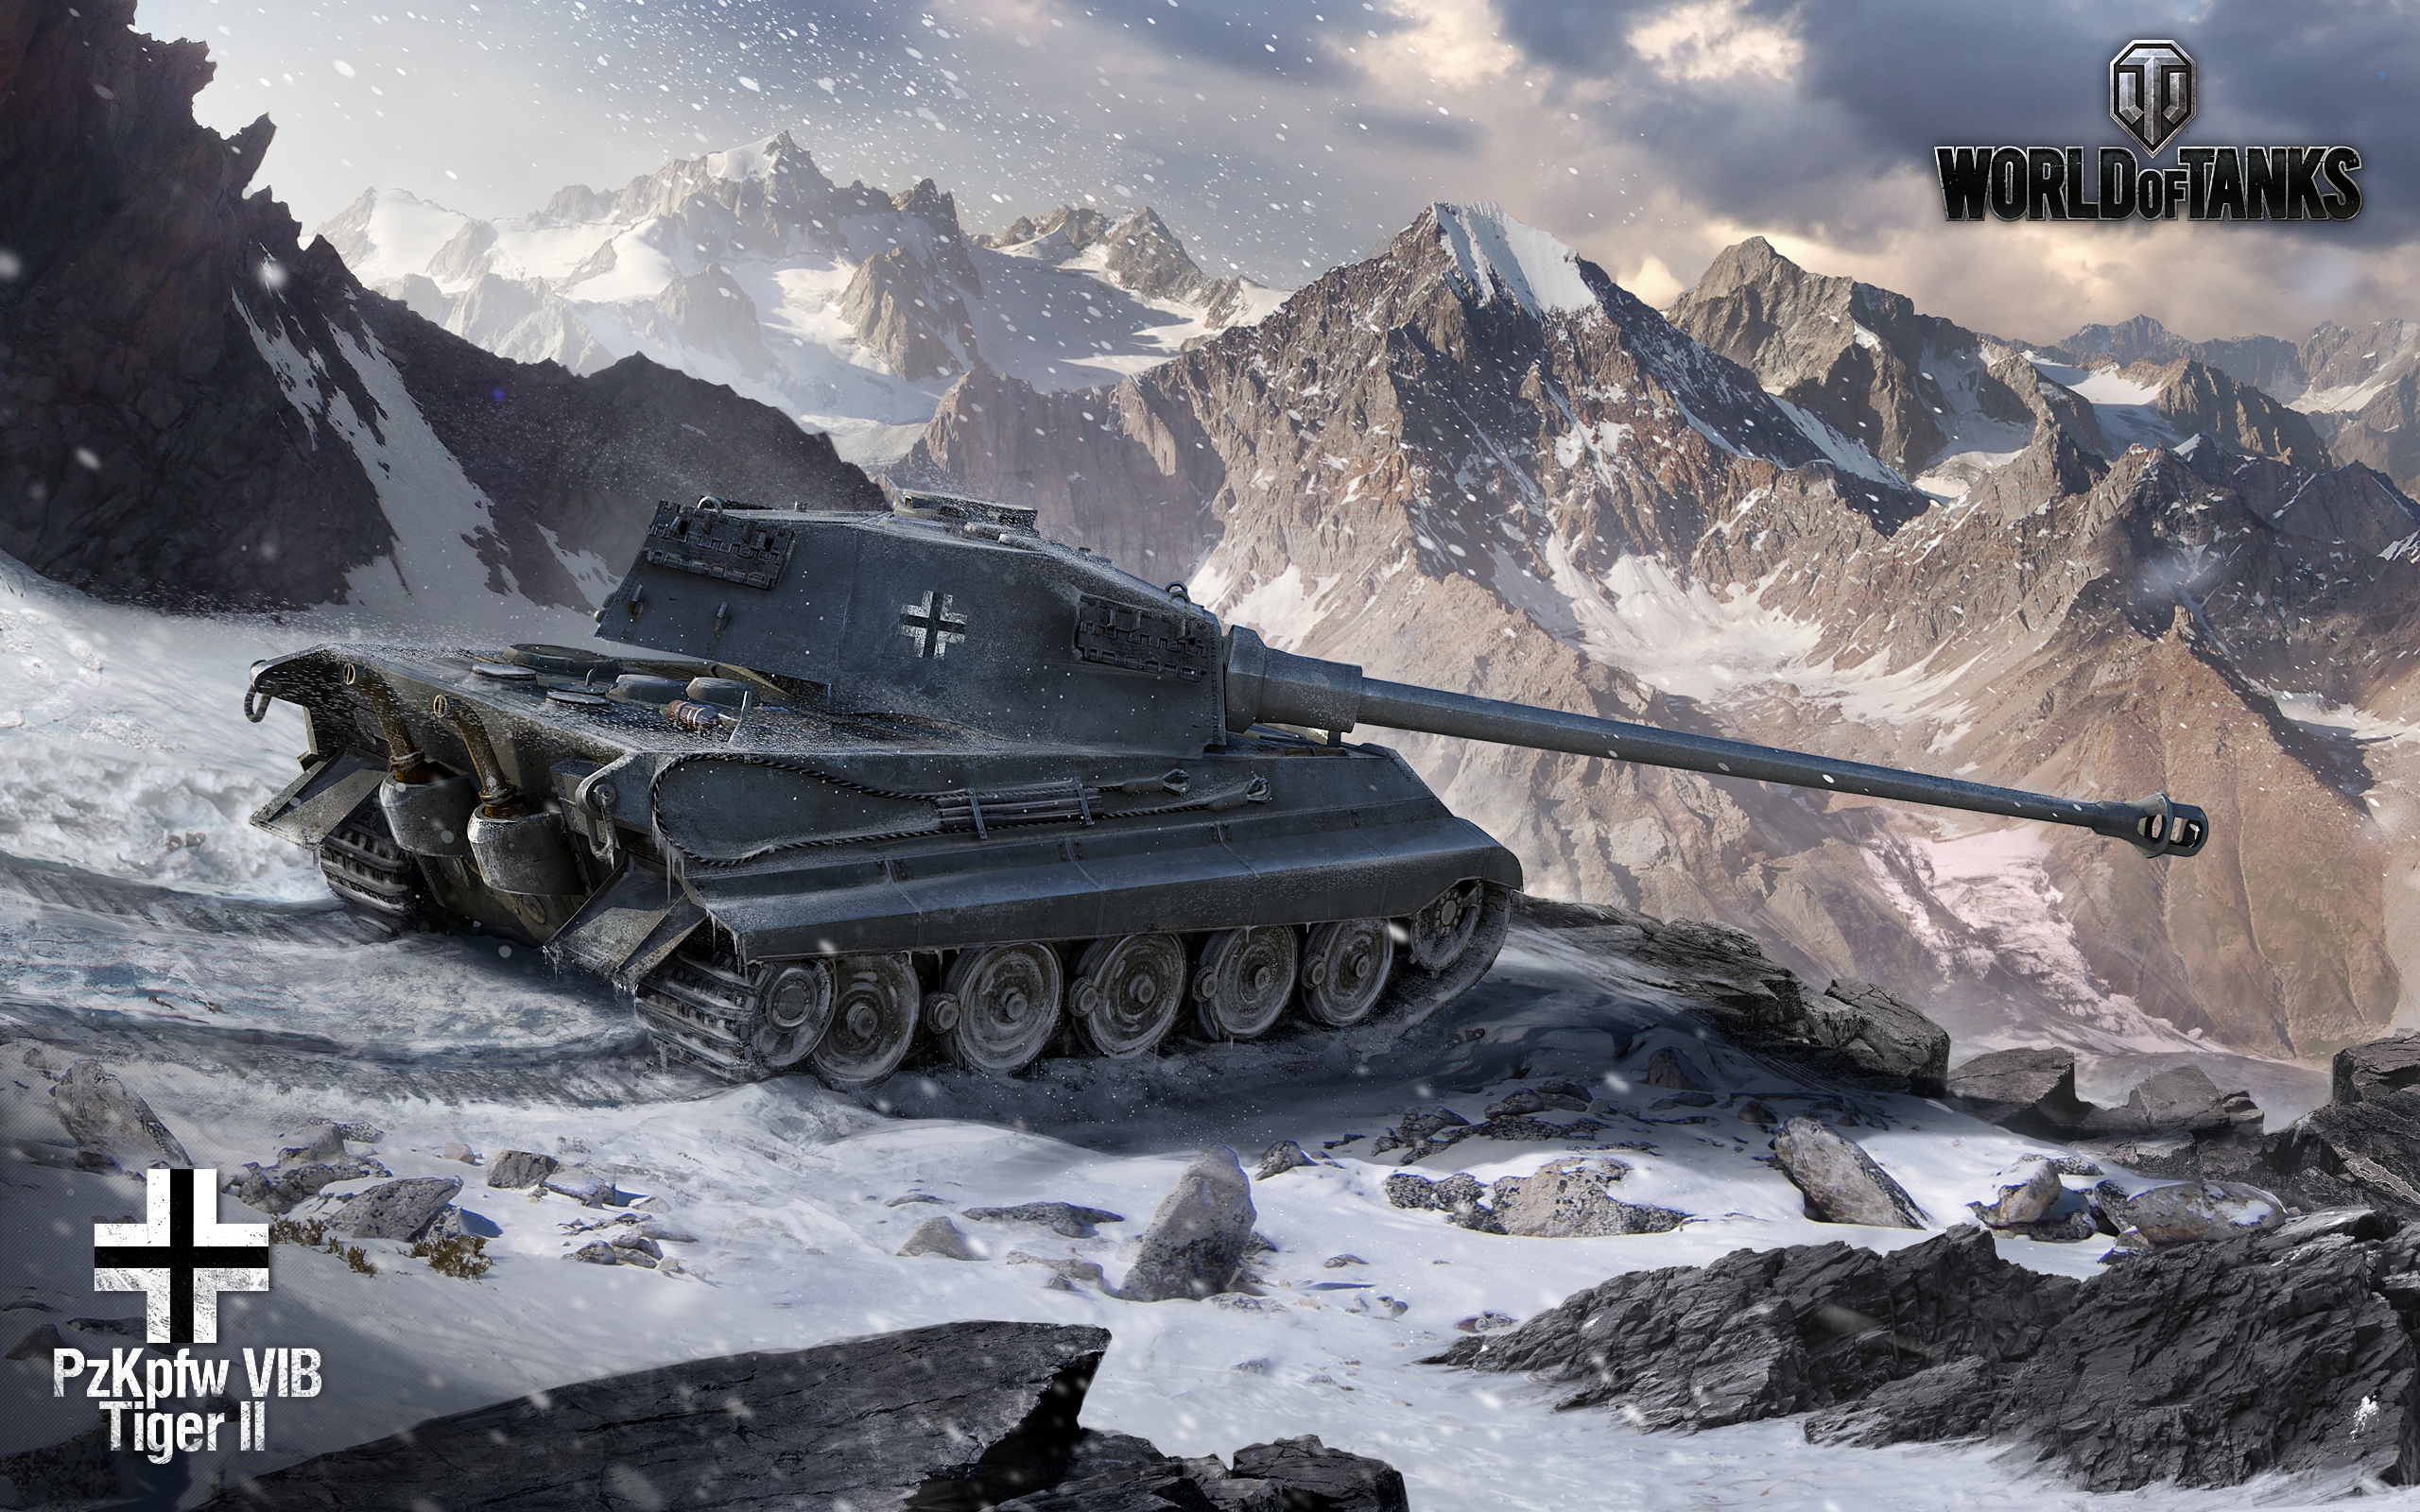 world of tanks wallpapers A3